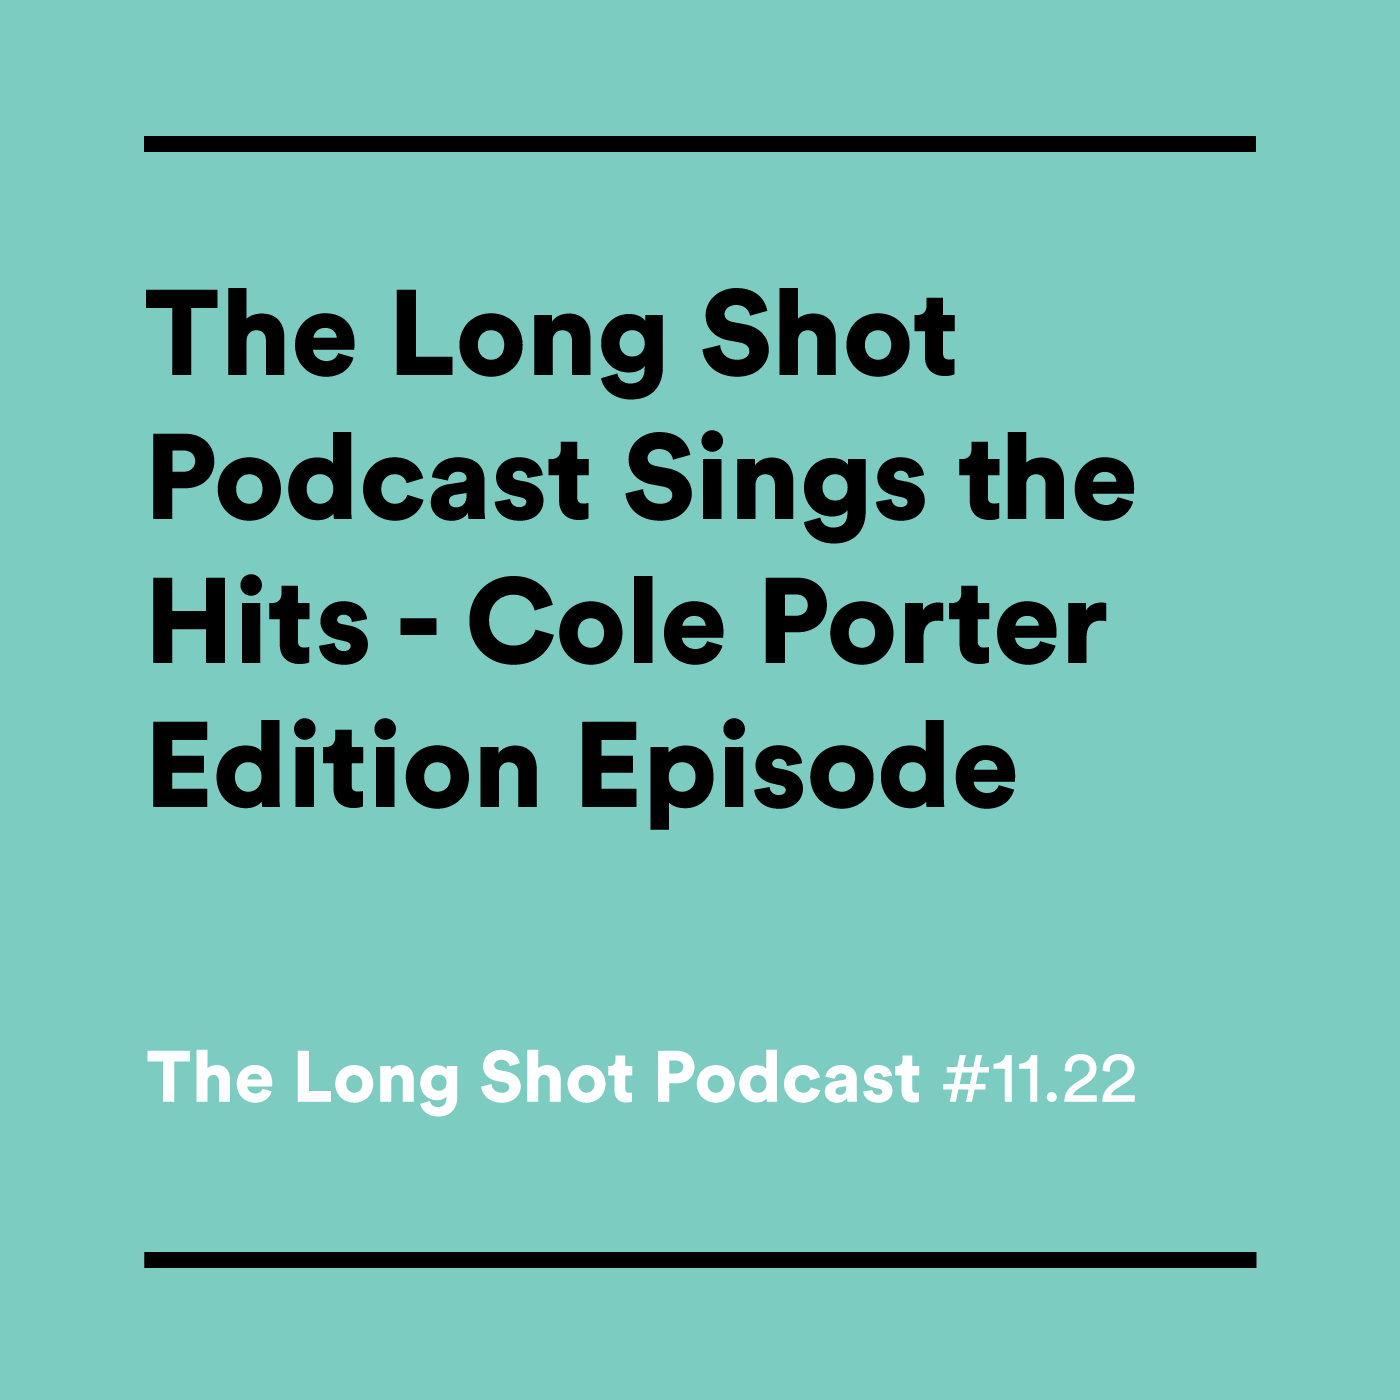 #11.22 The Long Shot Podcasts Sings the Hits - Cole Porter Edition Episode